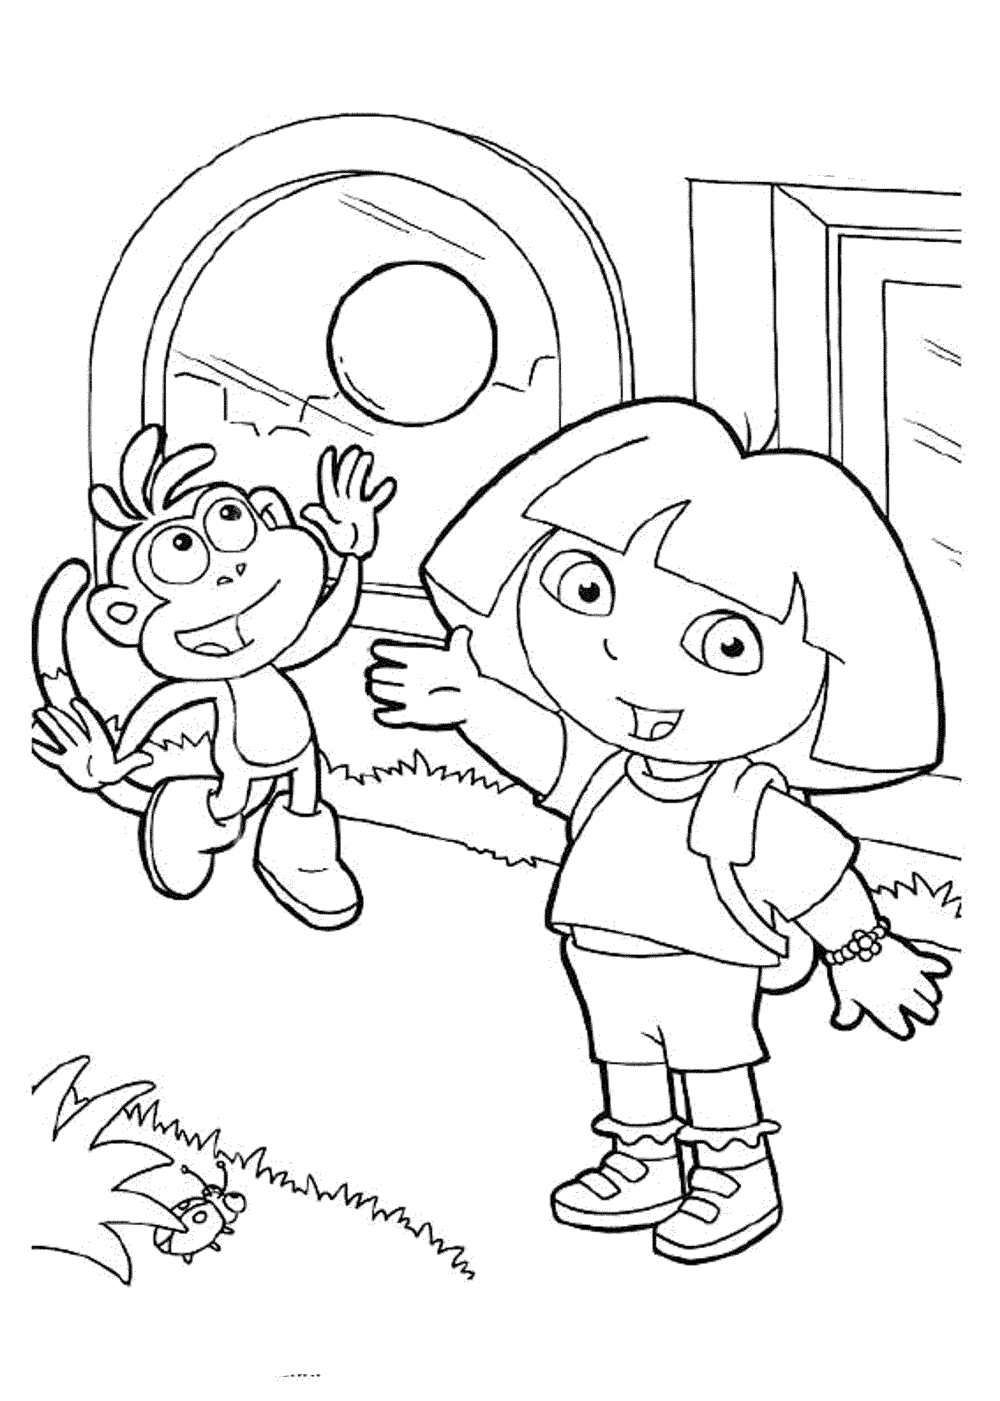 dora to color print download dora coloring pages to learn new things color to dora